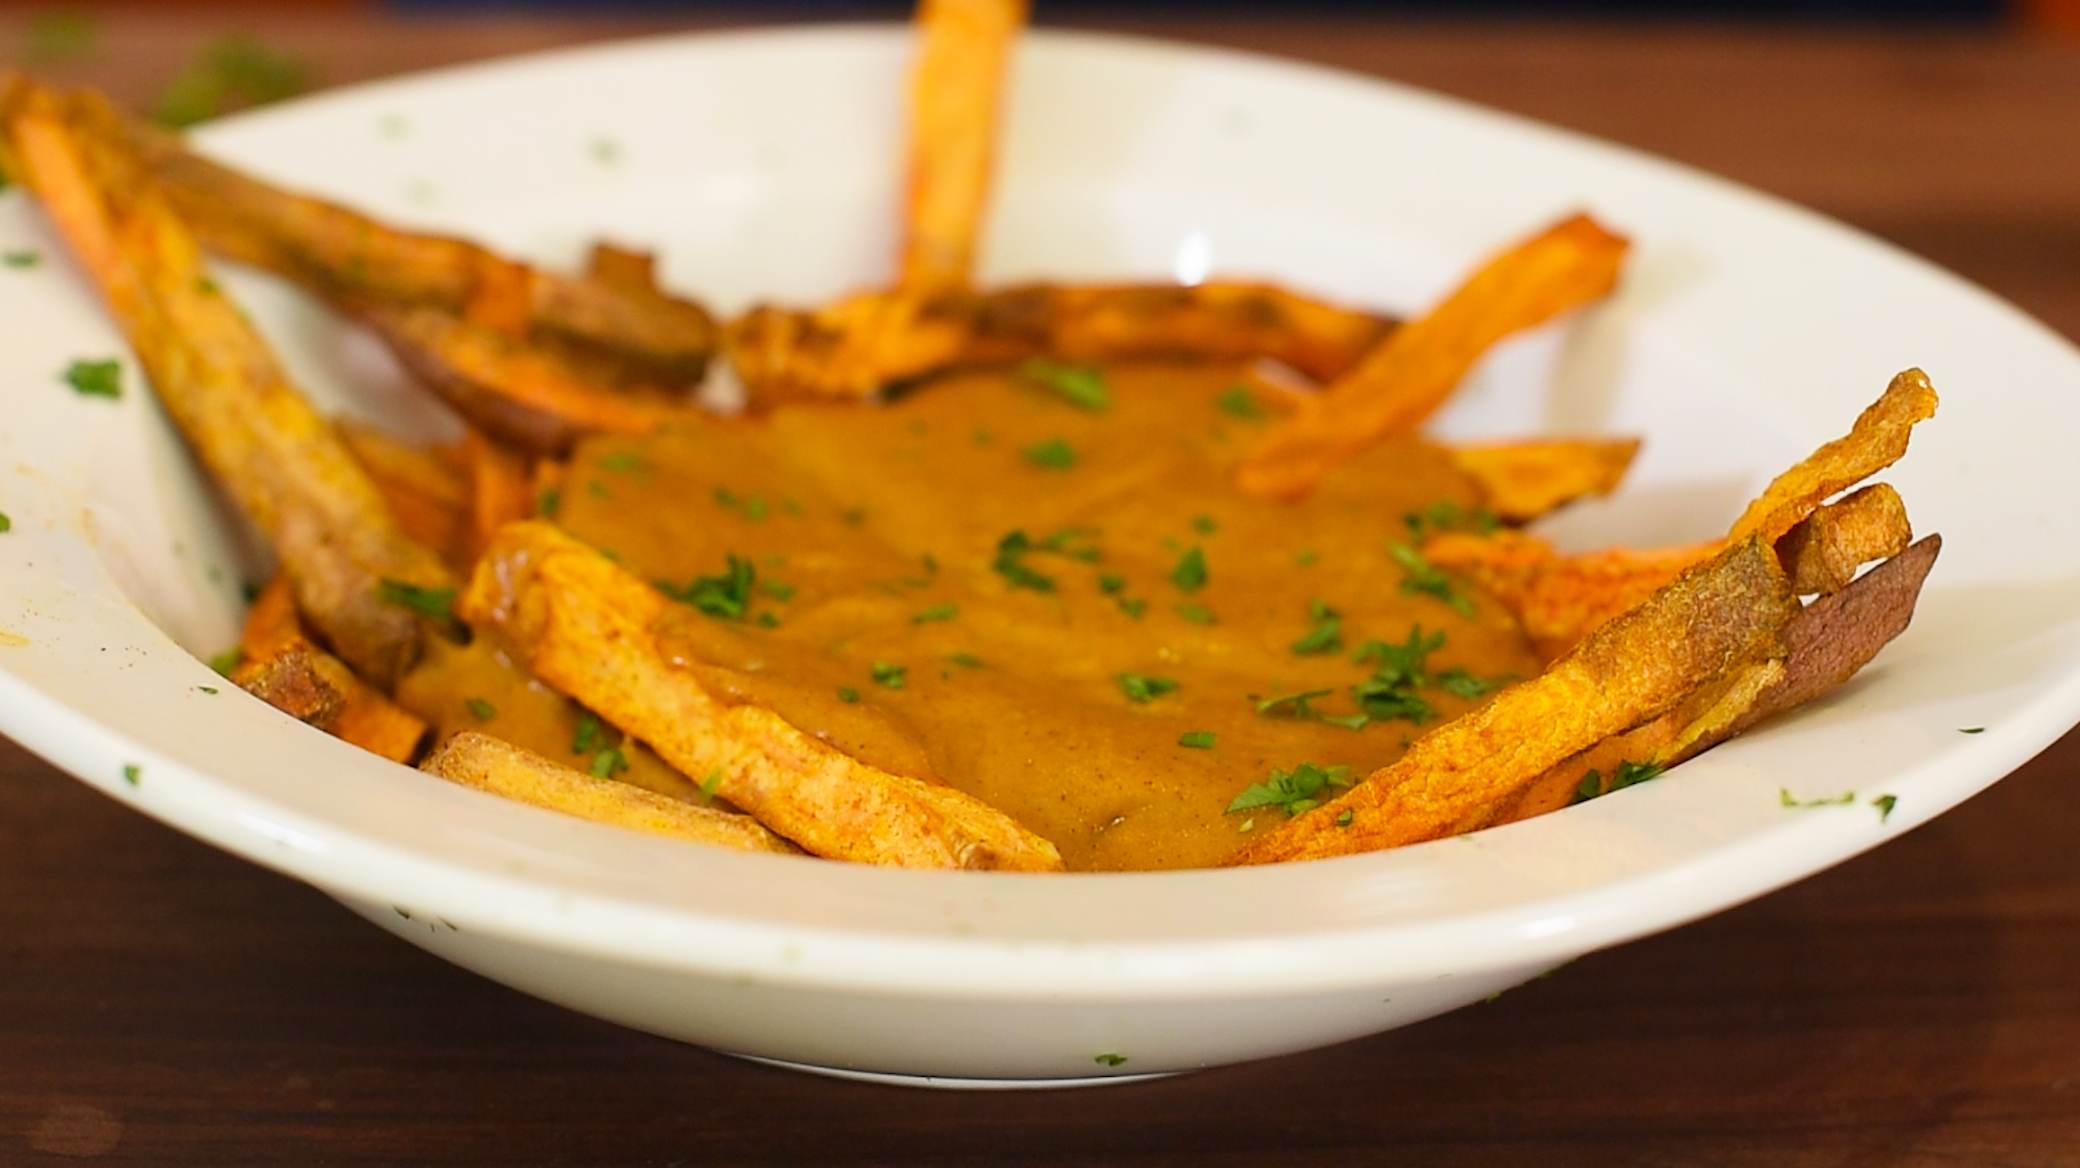 Mario-Vegan-Bodybuilder-Cheese-Fries-Recipe.jpg